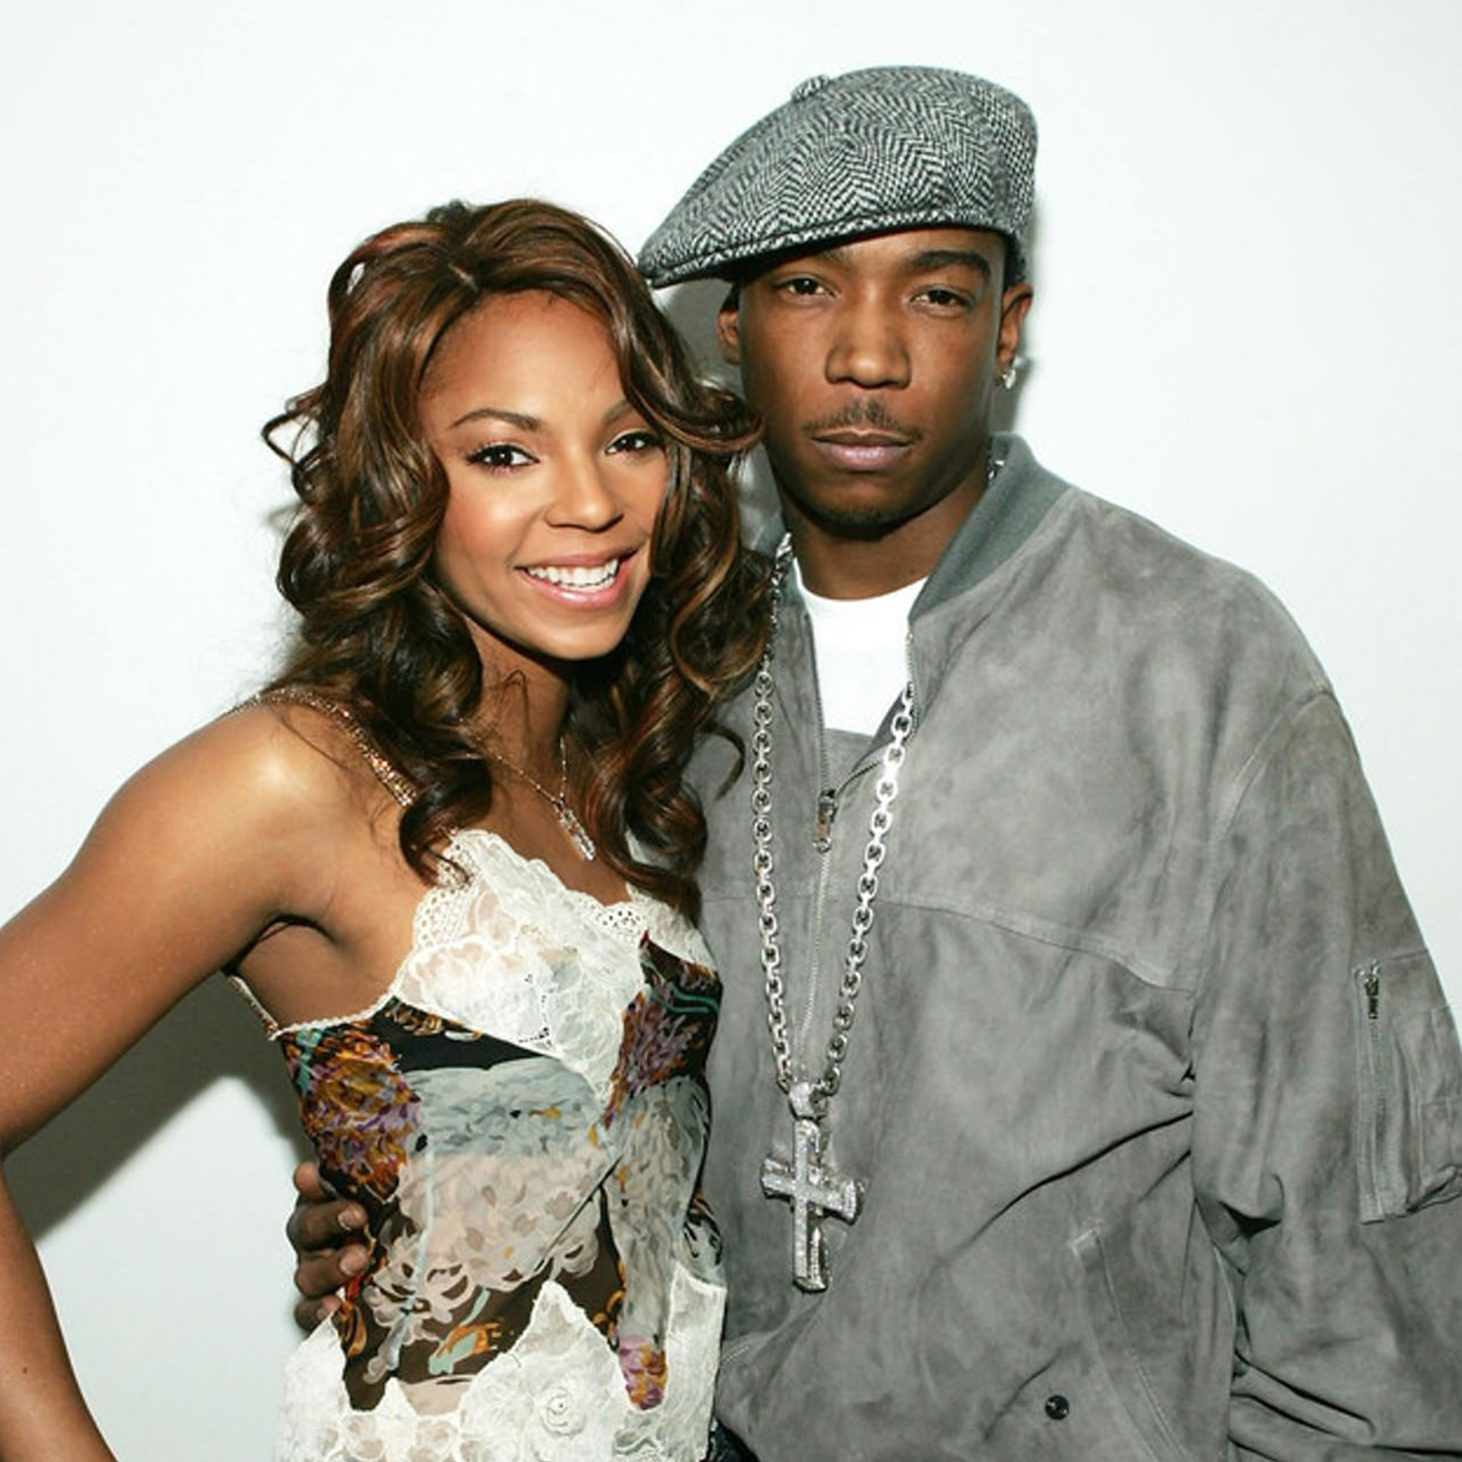 Ashanti & Ja Rule at Soulquarius